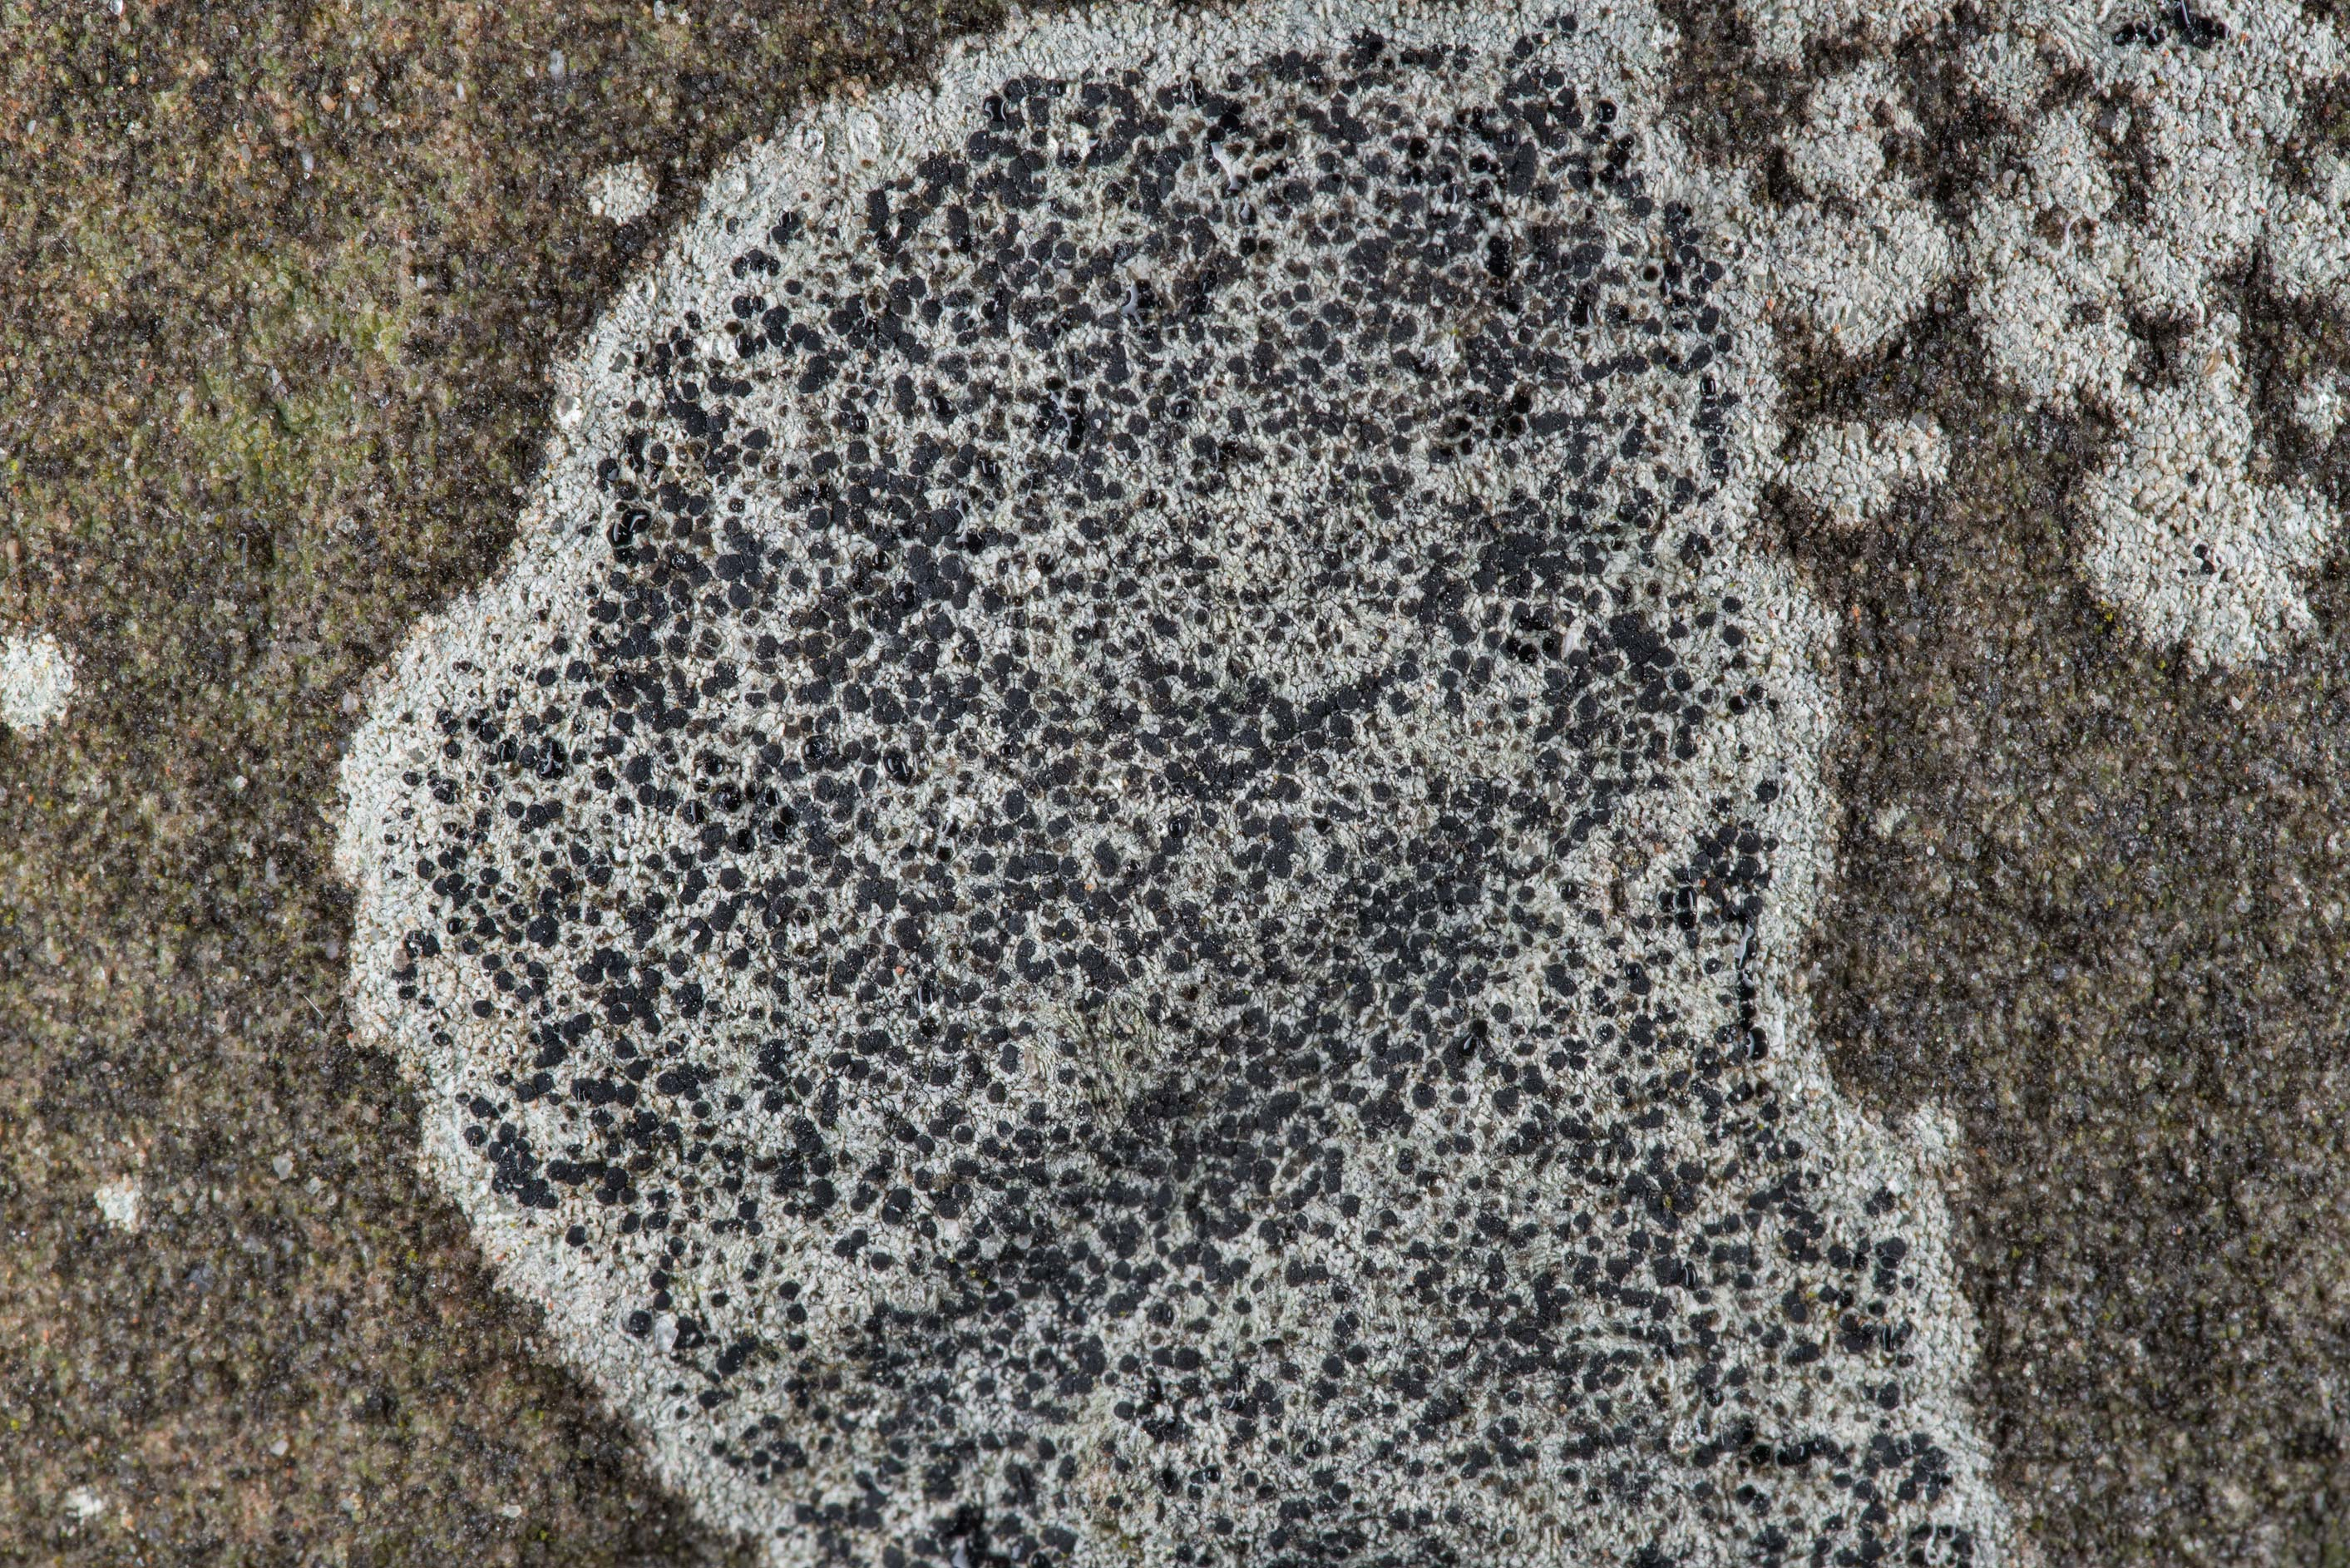 Button lichen (Buellia) on a limestone tomb in...Cemetery near Independence. Texas